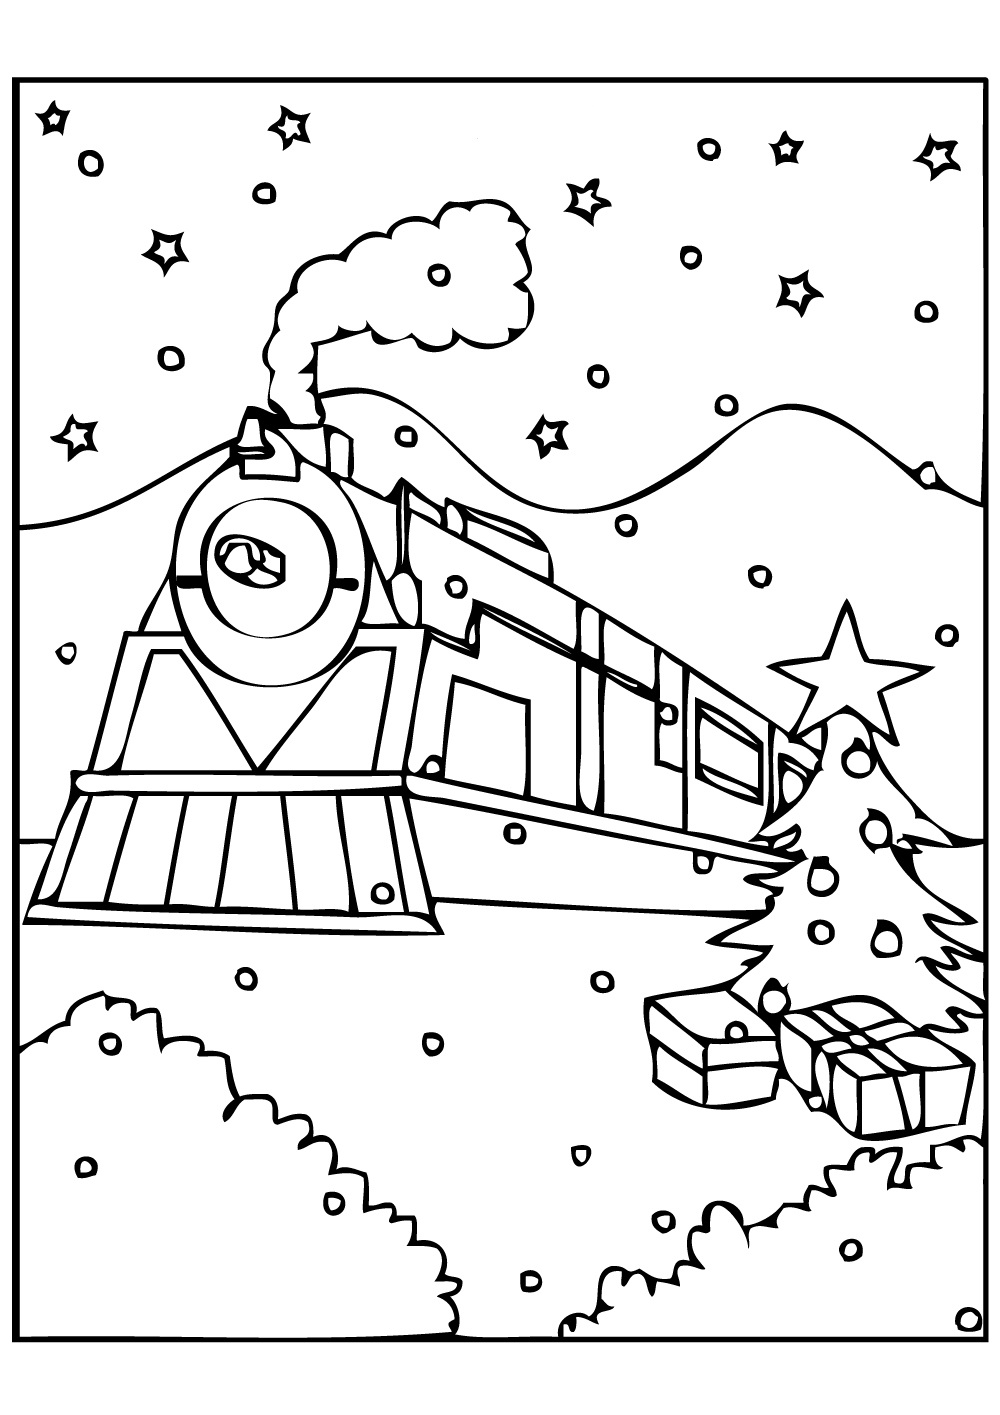 polar express train coloring pages - photo#4